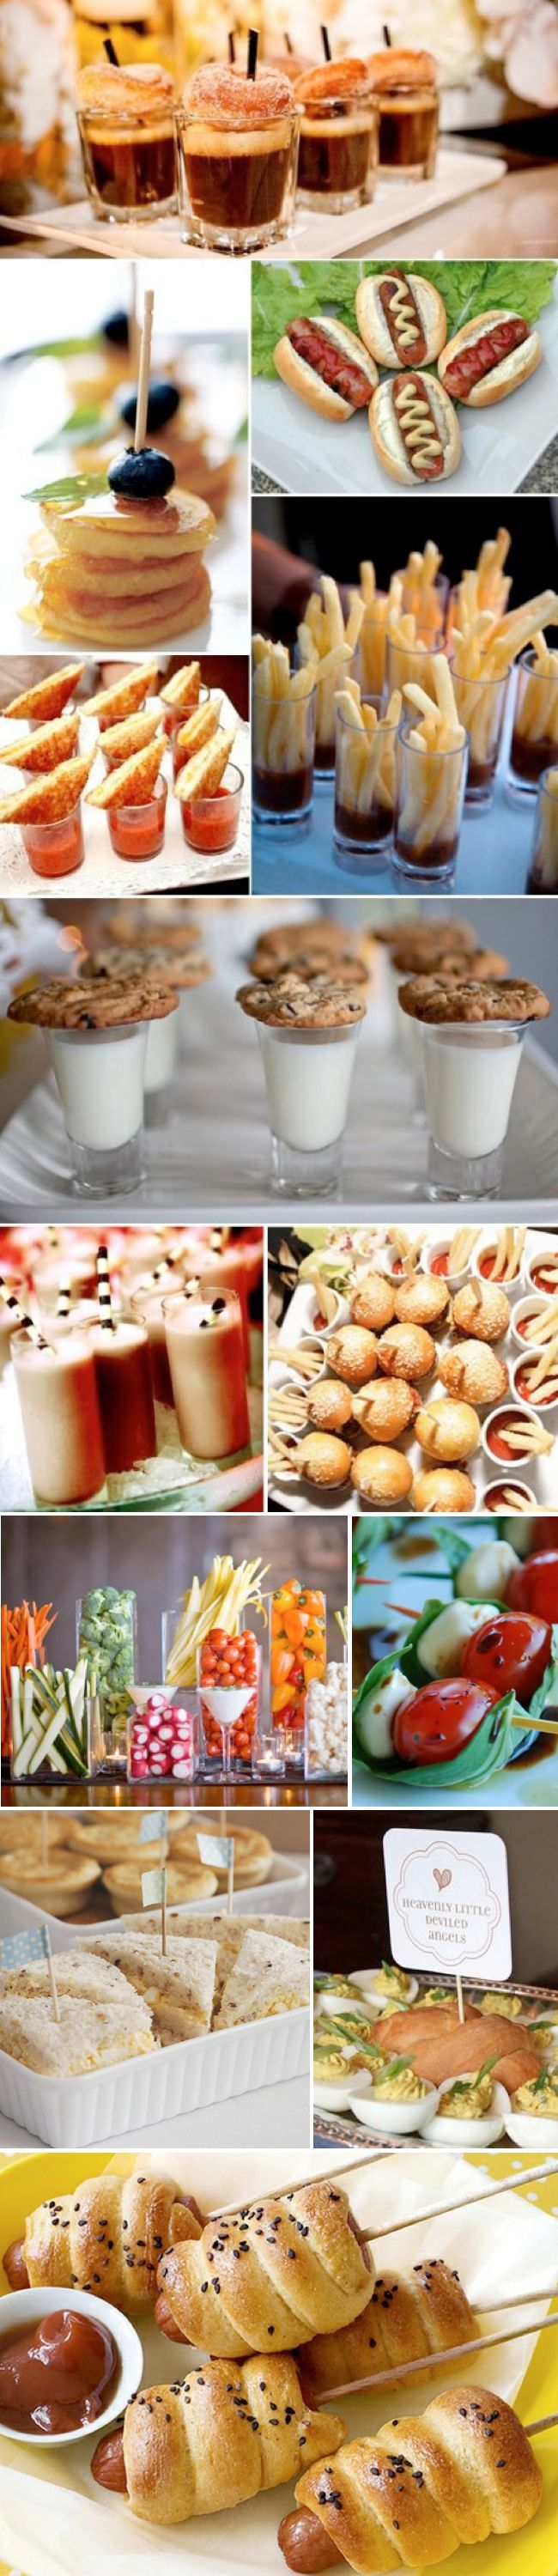 finger foods {perfect for a party}